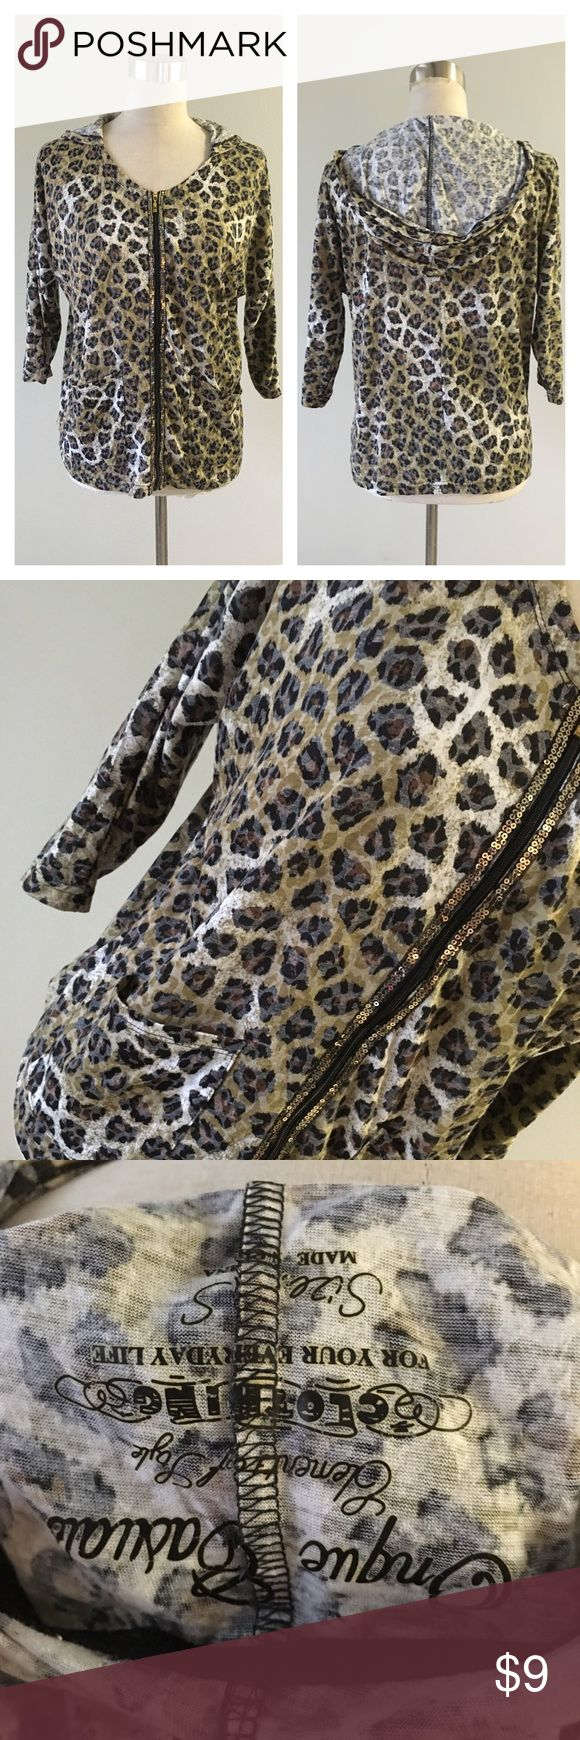 Animal Print Lightweight Sequin Zip Up Hoodie Animal Print Lightweight Sequin Zip Up Hoodie. Size small. In great condition. Please see pictures. Thank you for looking at listing. Feel free to ask questions :)!   ✨⭐️️Bundle and save!⭐️✨10% off 2 items, 20% off 3 items & 30% off 5+ items!   •Sorry no trades. •No modeling. •No Low balls 🙅🏻 please and thank you! DB Onque Casuals Tops Sweatshirts & Hoodies